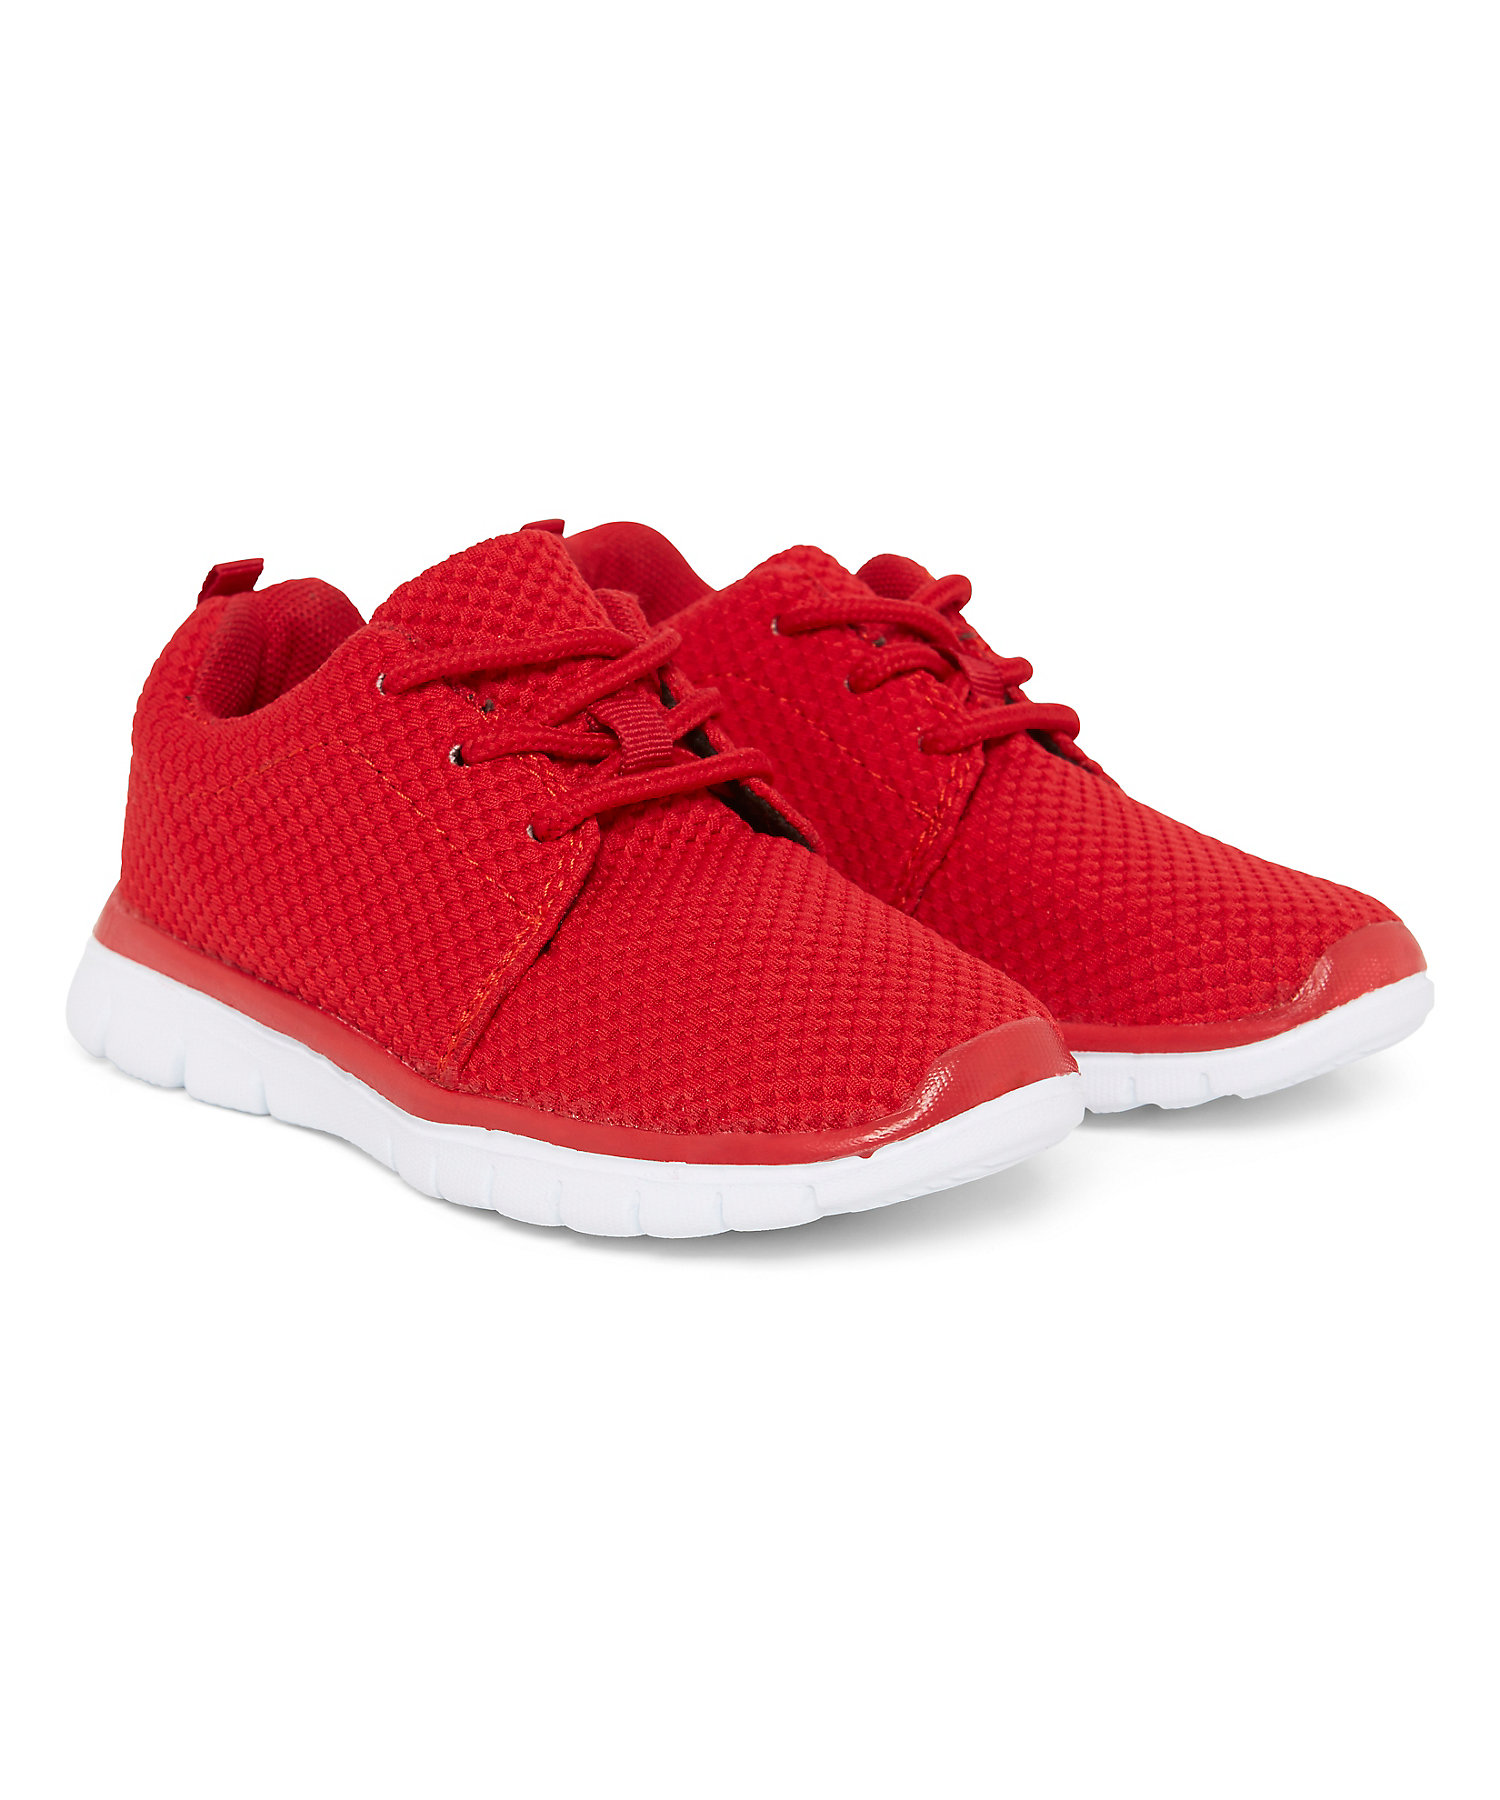 Mothercare | Boys Sports Shoes - Red